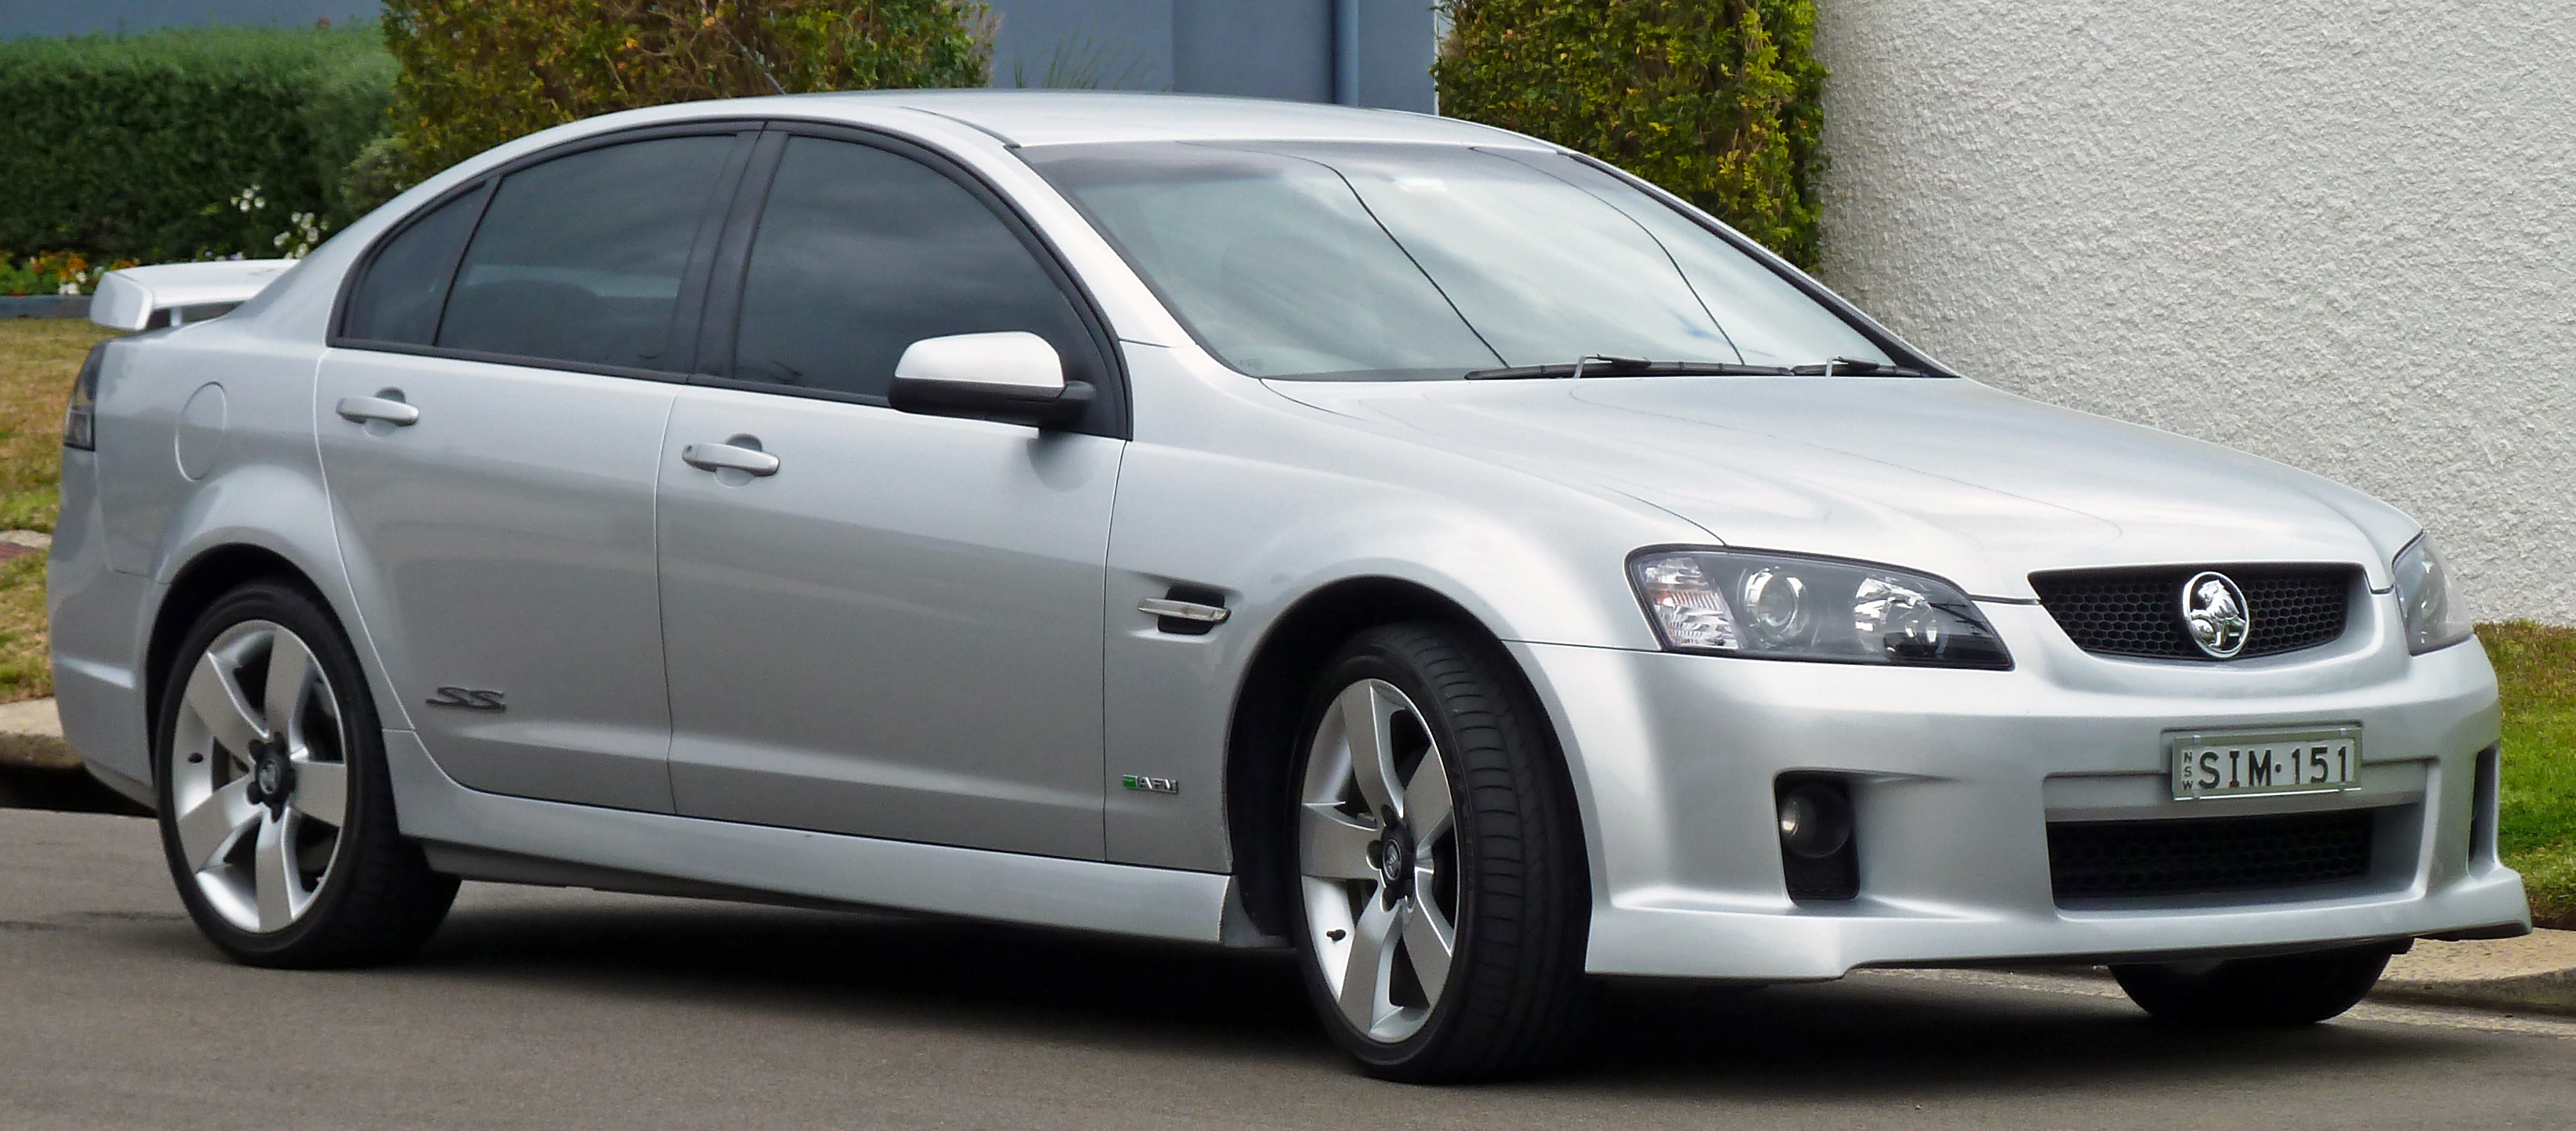 holden commodore wallpaper